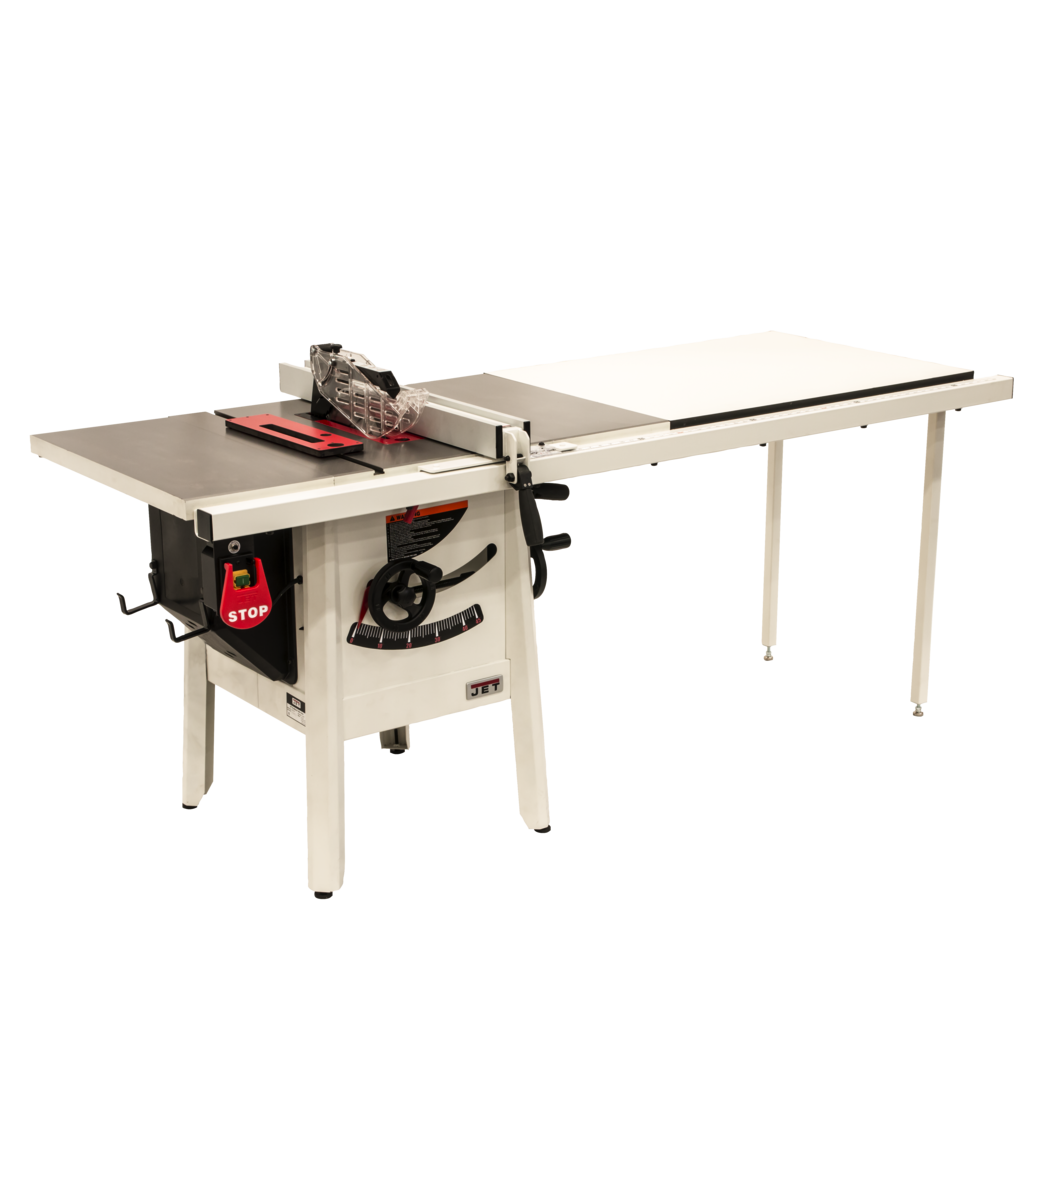 "The JPS-10 1.75 HP 115V 52"" Proshop Tablesaw with Cast wings"